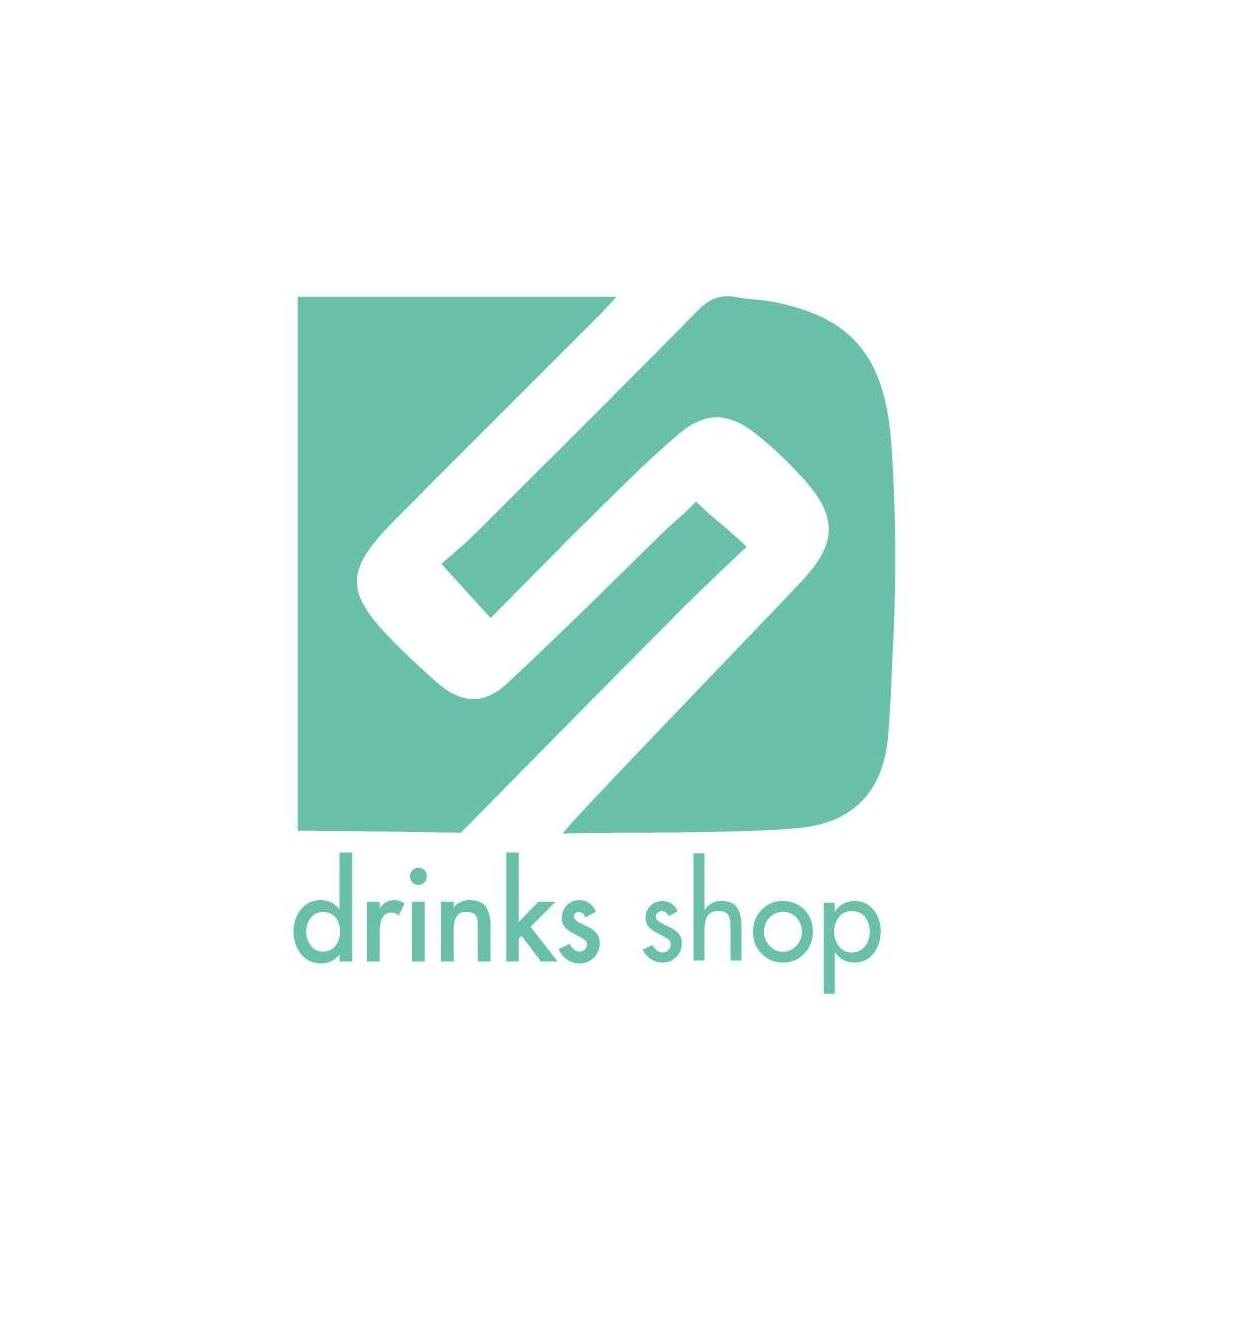 Drinks Shop